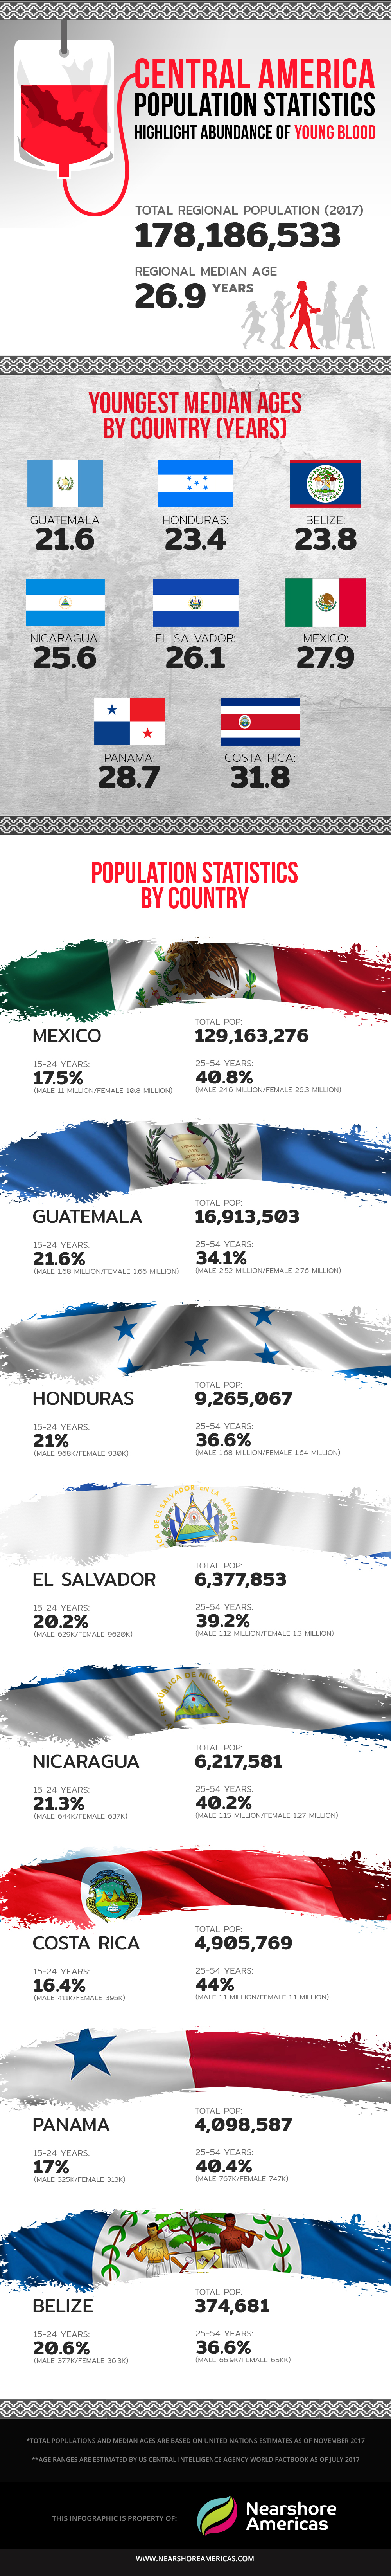 central america population